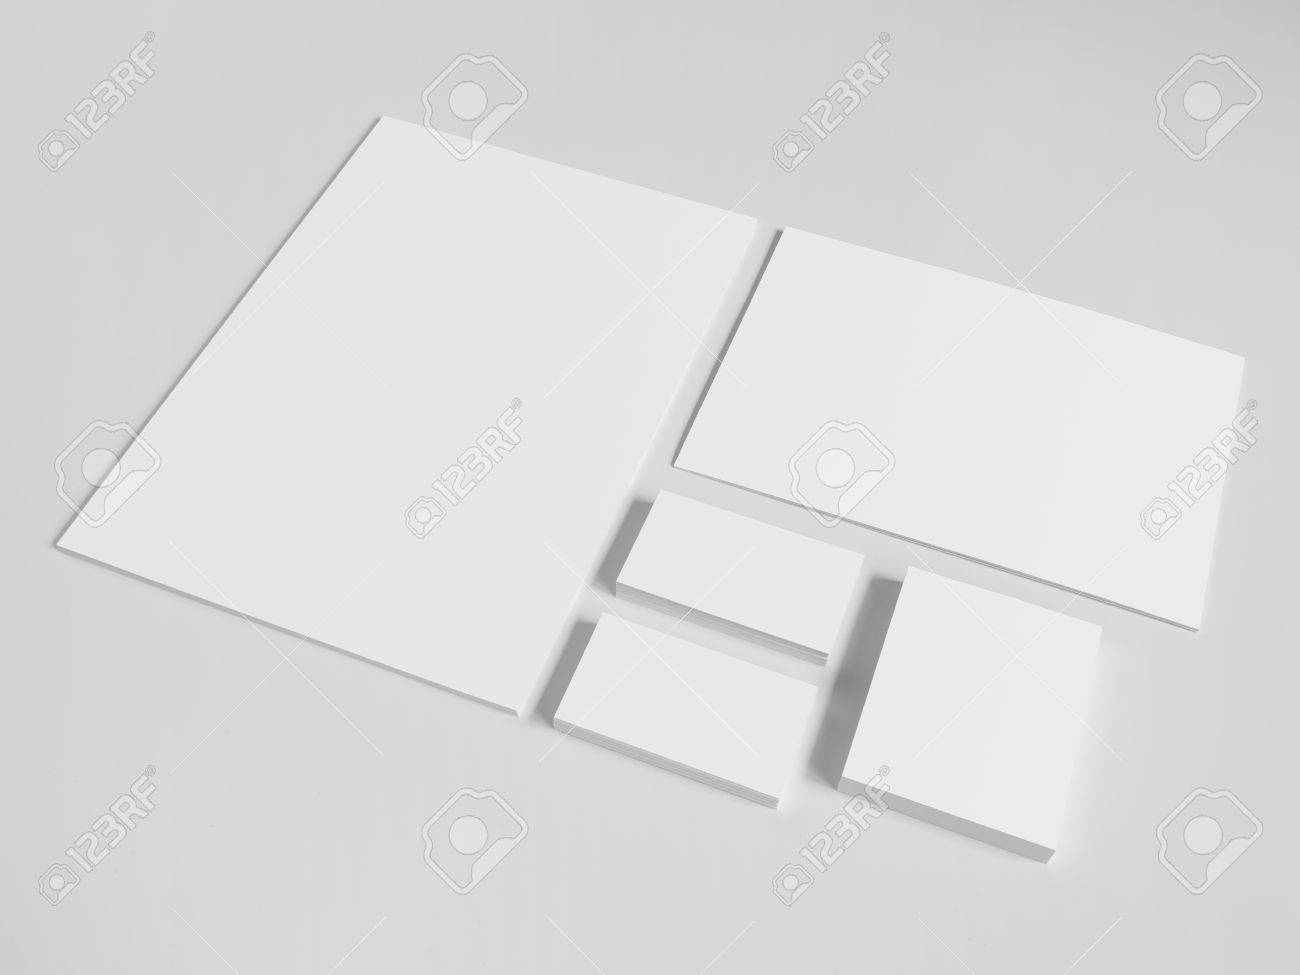 Blank business cards with a pile of papers and envelopes mockup blank business cards with a pile of papers and envelopes mockup on white background reheart